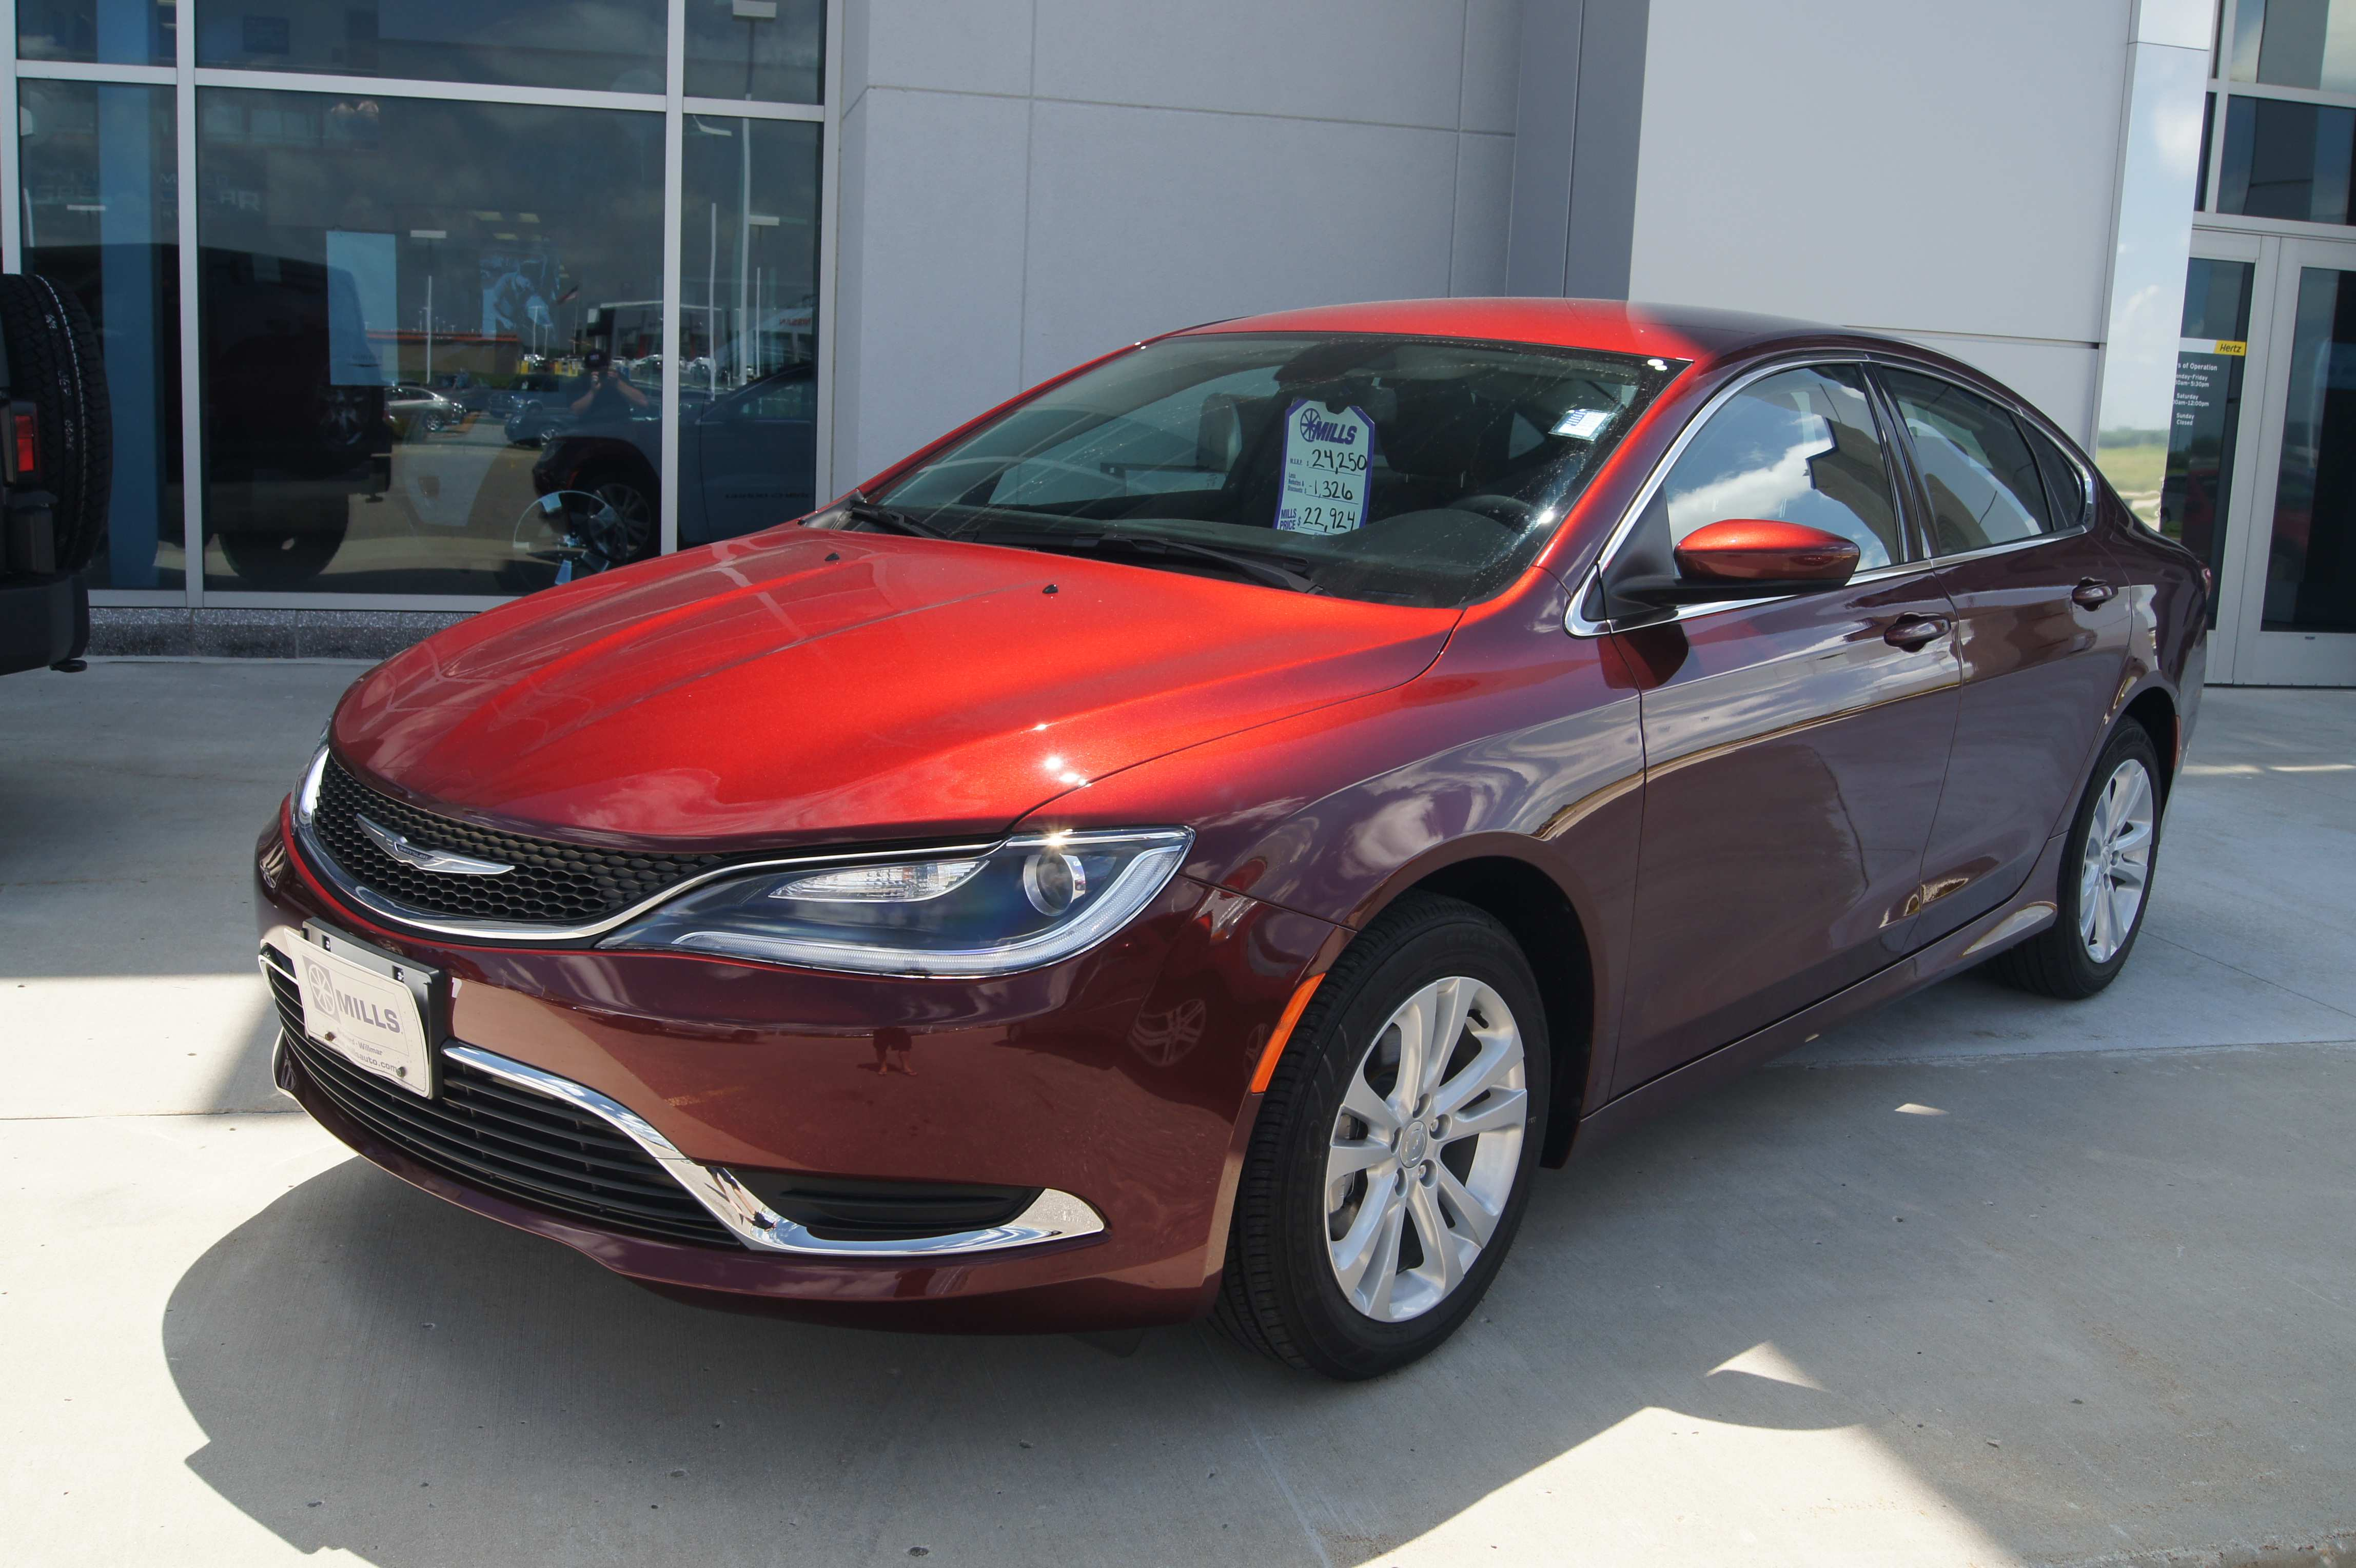 19 New Picture Of A Chrysler 200 Price and Review with Picture Of A Chrysler 200